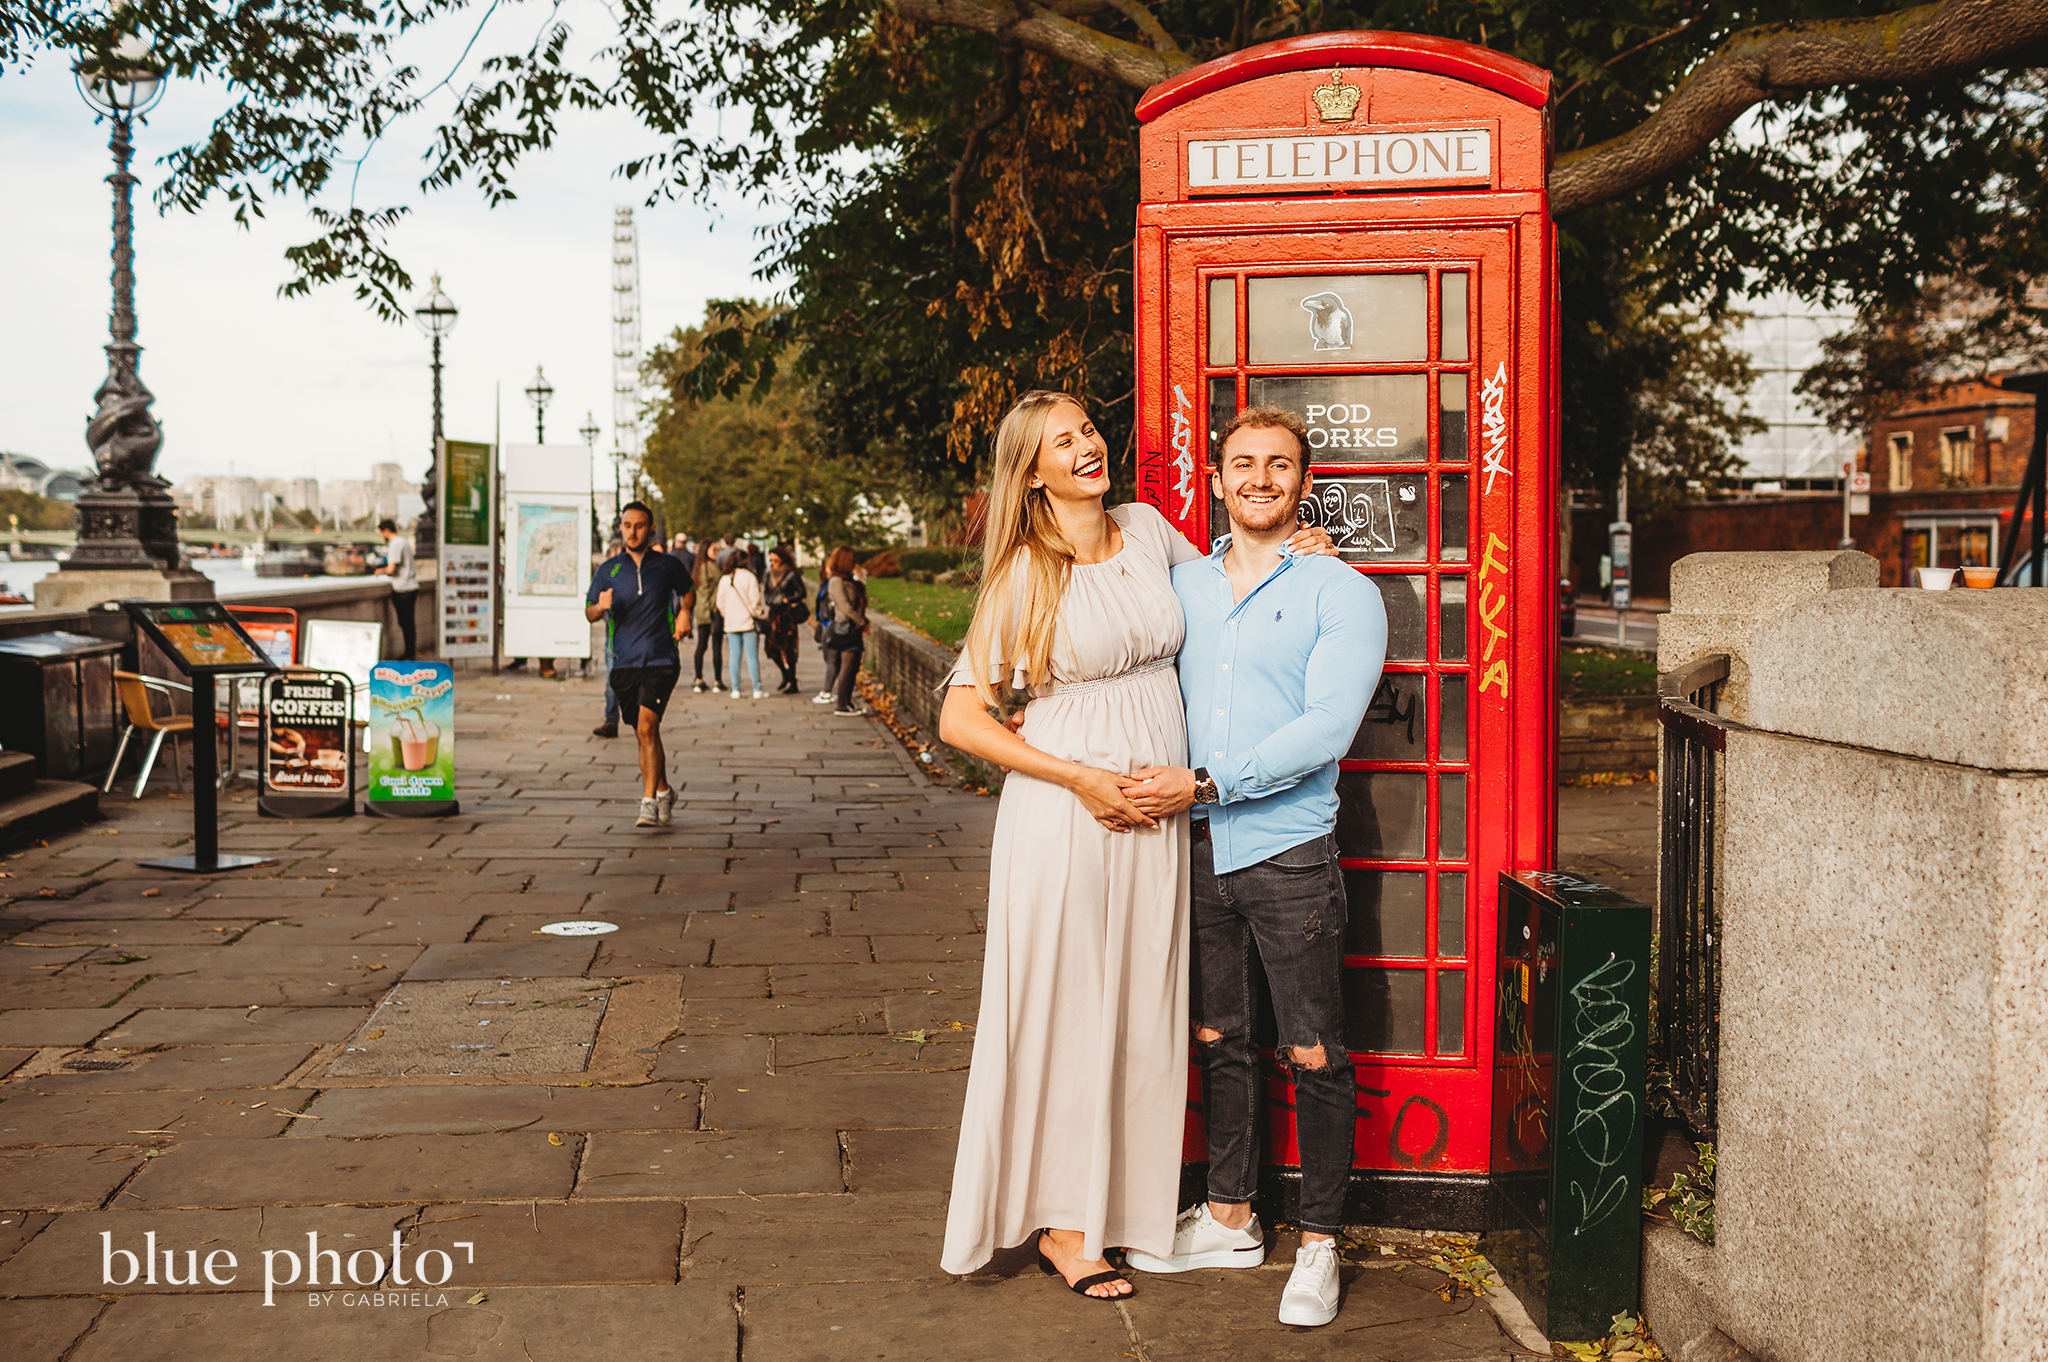 Angelika and Wojtek during their maternity session in South Bank, Central London. The couple is smiling.